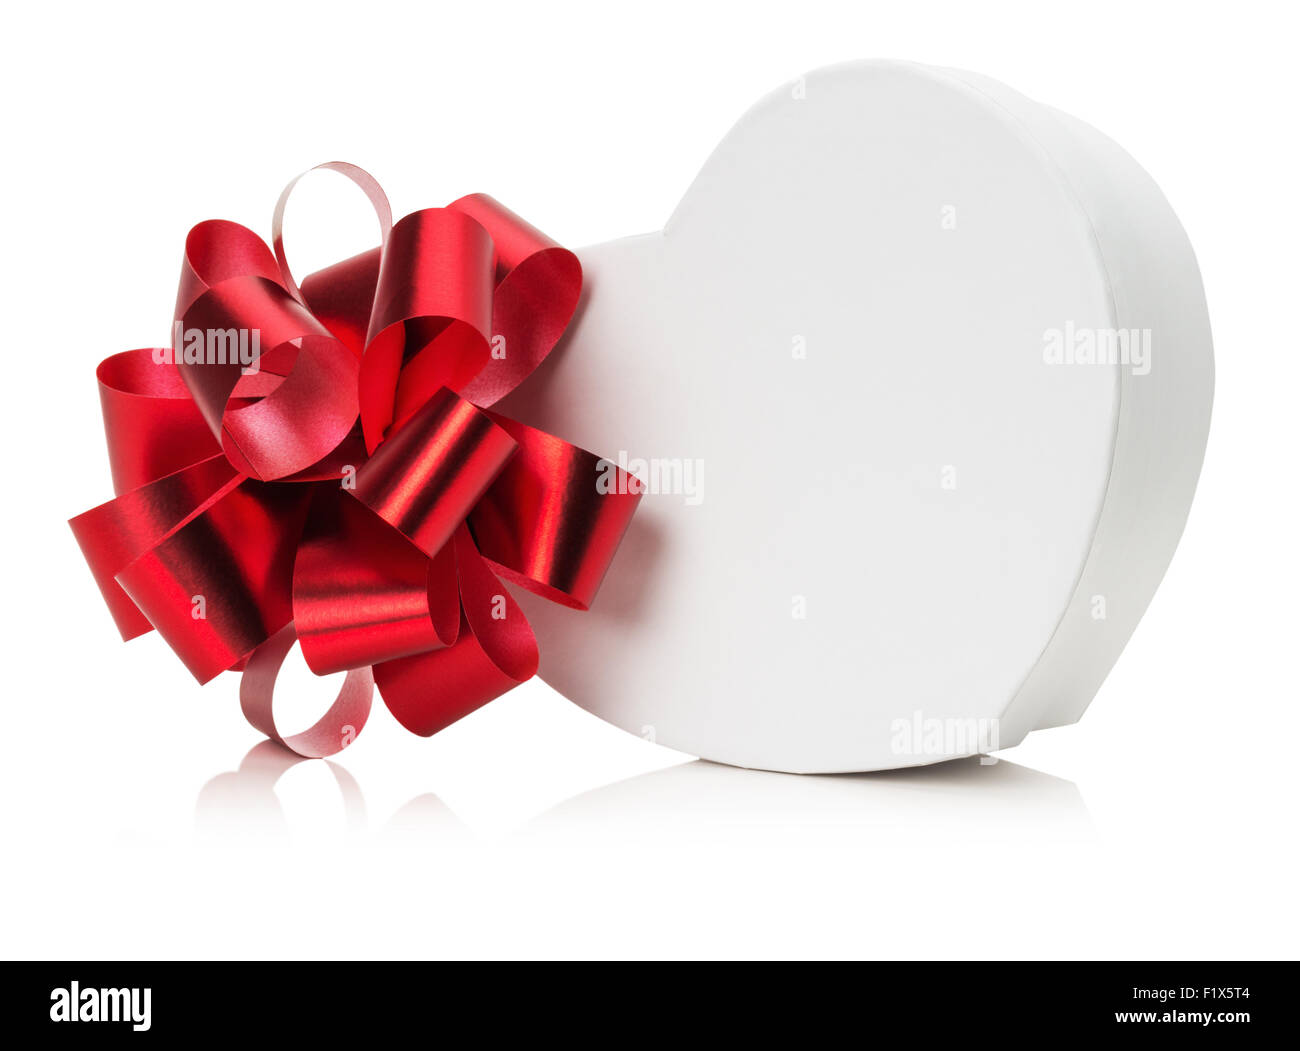 heart shaped gift box with red bow. Stock Photo